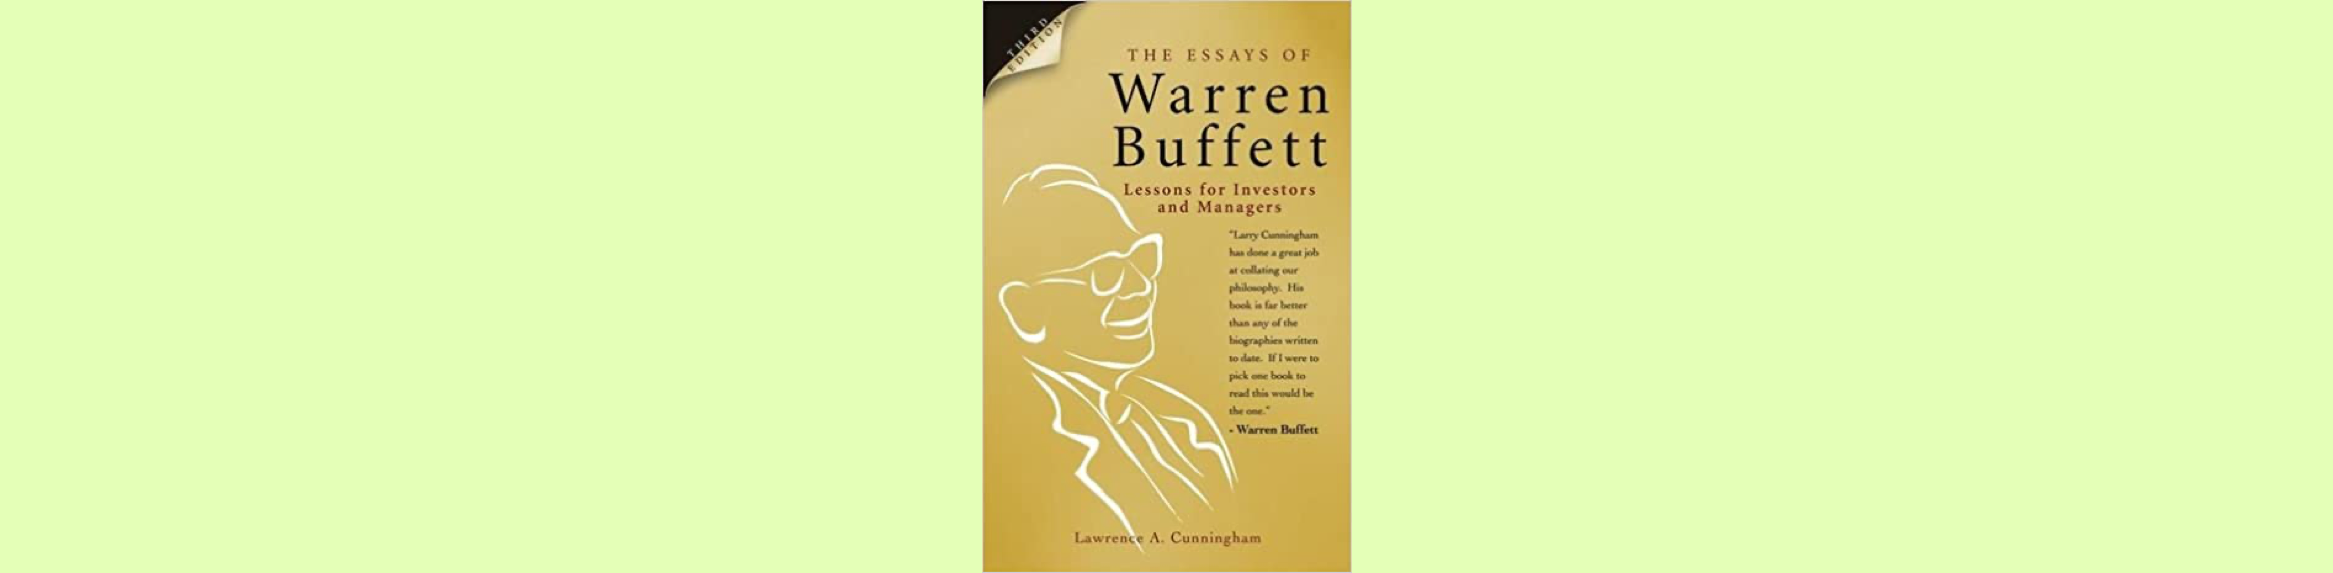 Top 18 Best Investing Books to Read for Every Investor (2021 List) The Essays of Warren Buffett: Lessons for Investors and Managers – Warren E. Buffet & Lawrence A. Cunningham